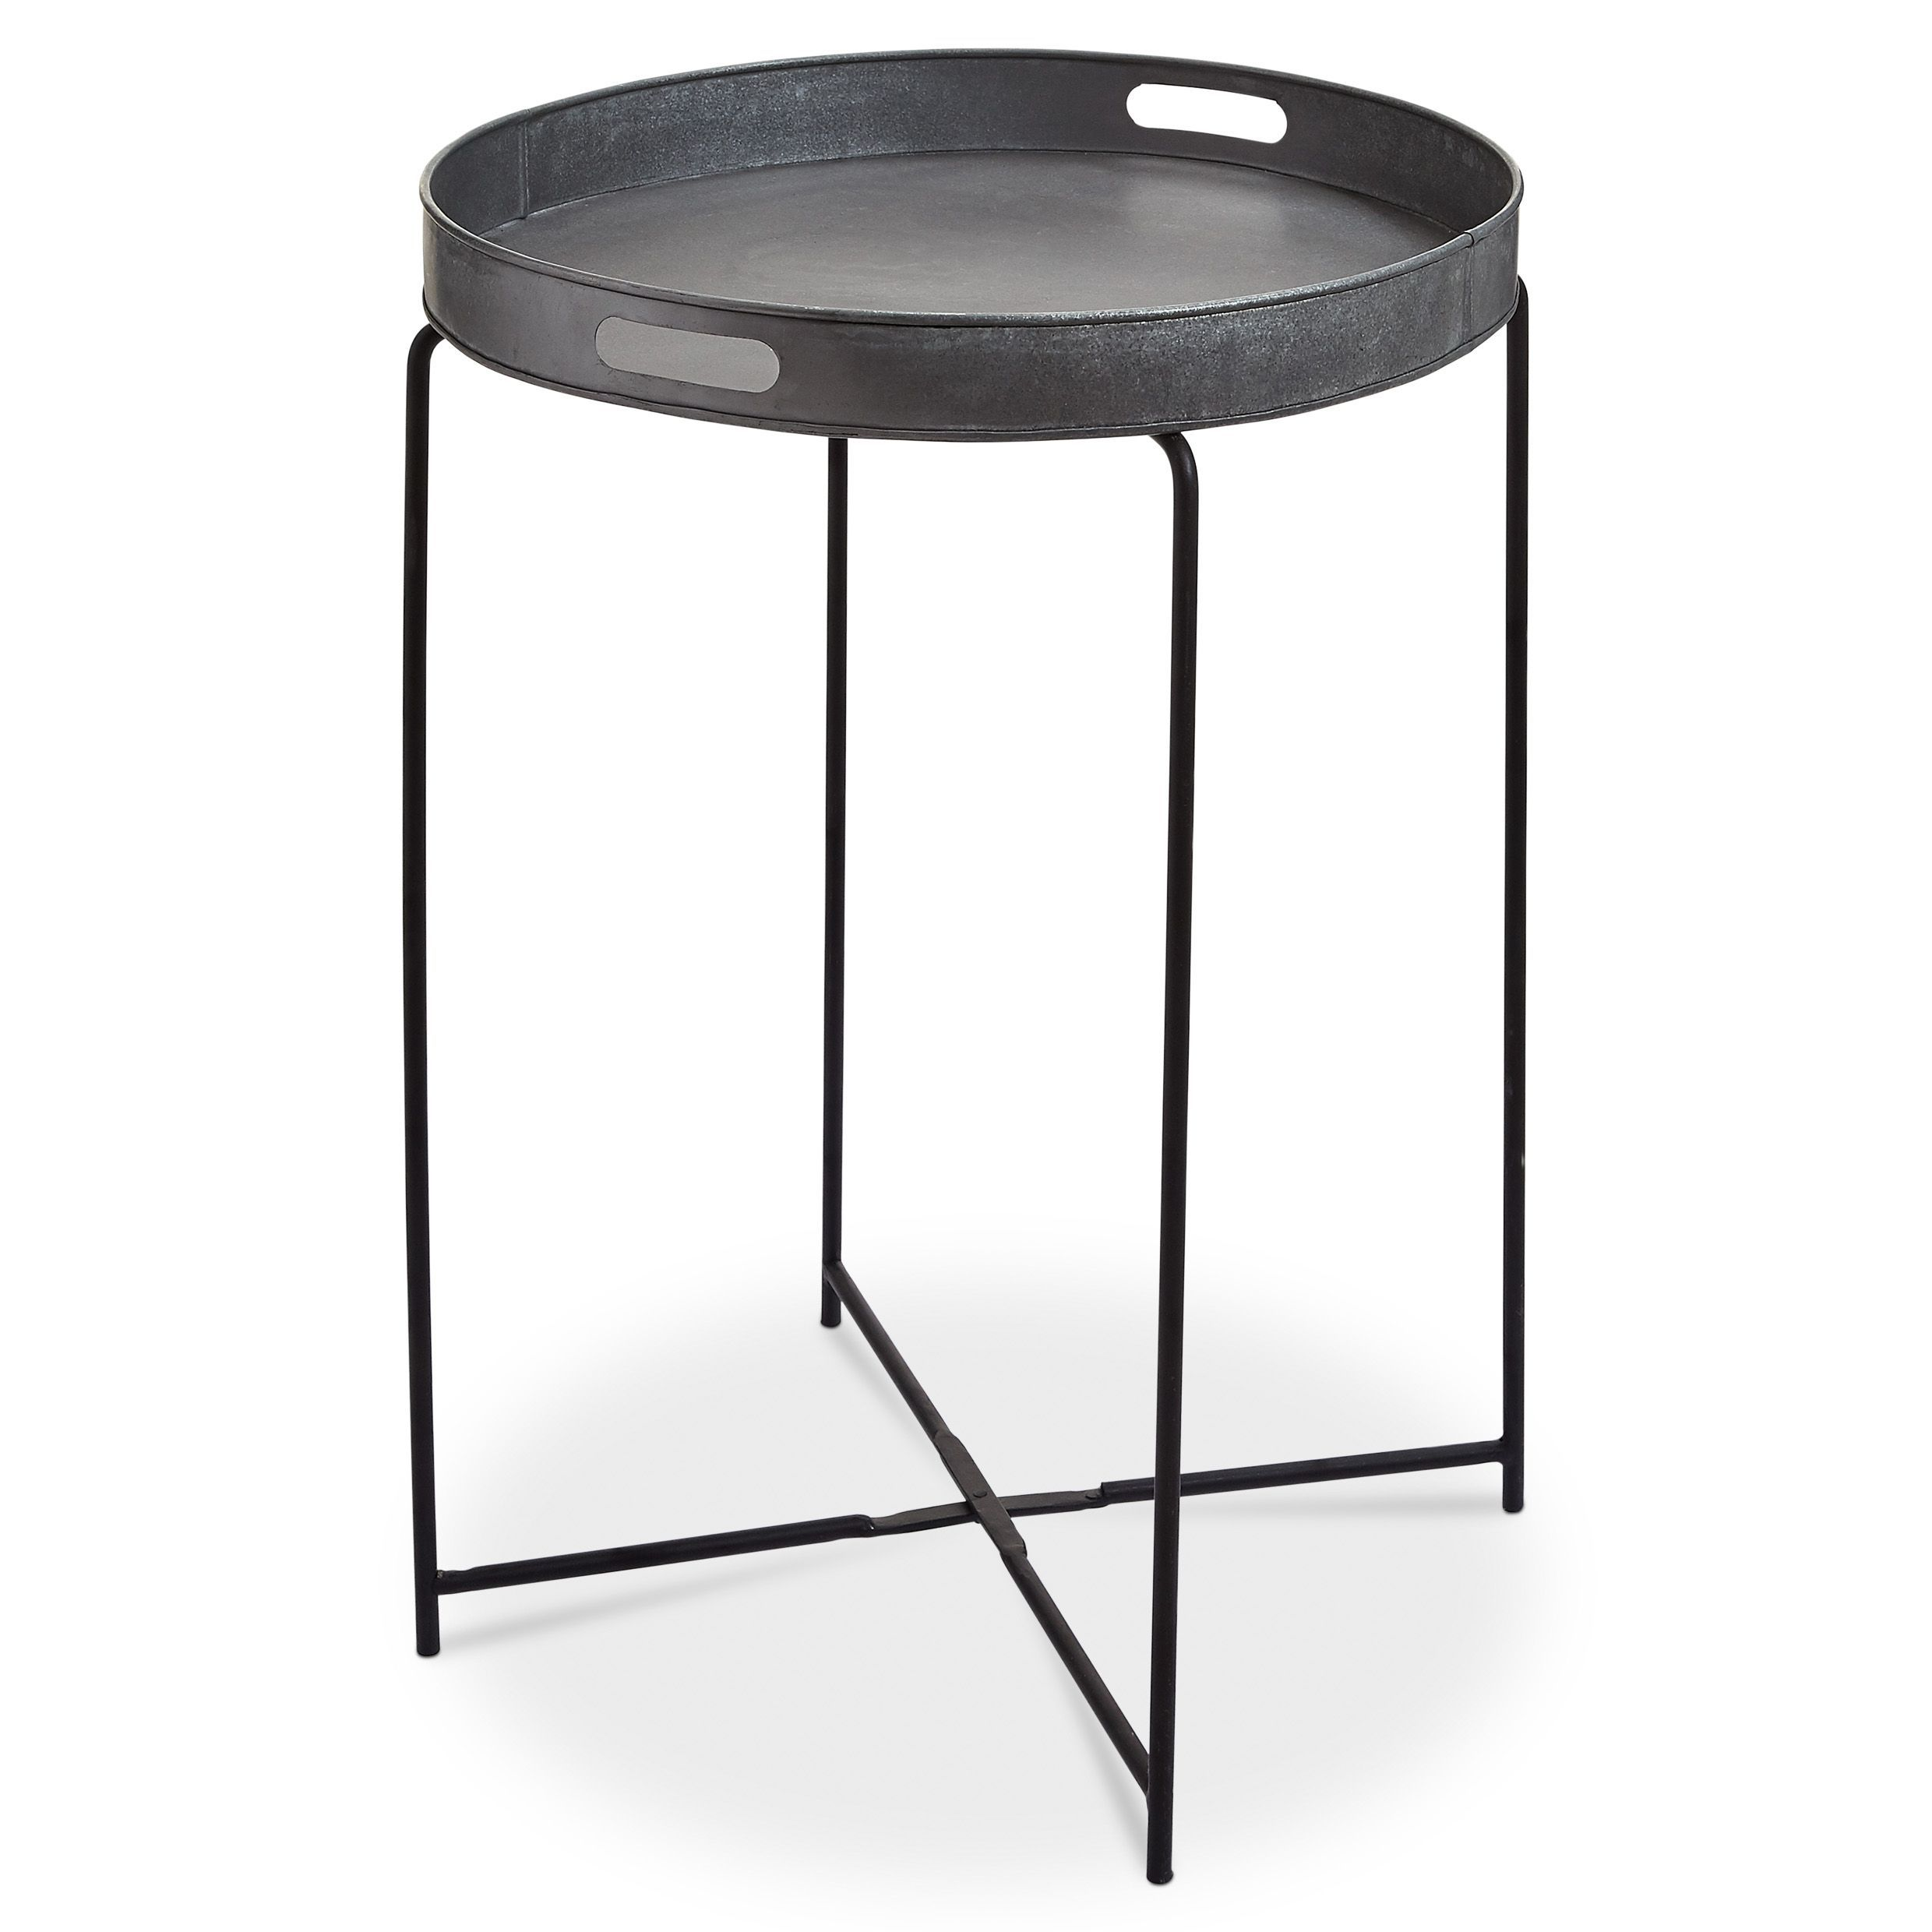 huge selection of 4afea 4846d Rural Metal Side table | Departments | DIY at B&Q